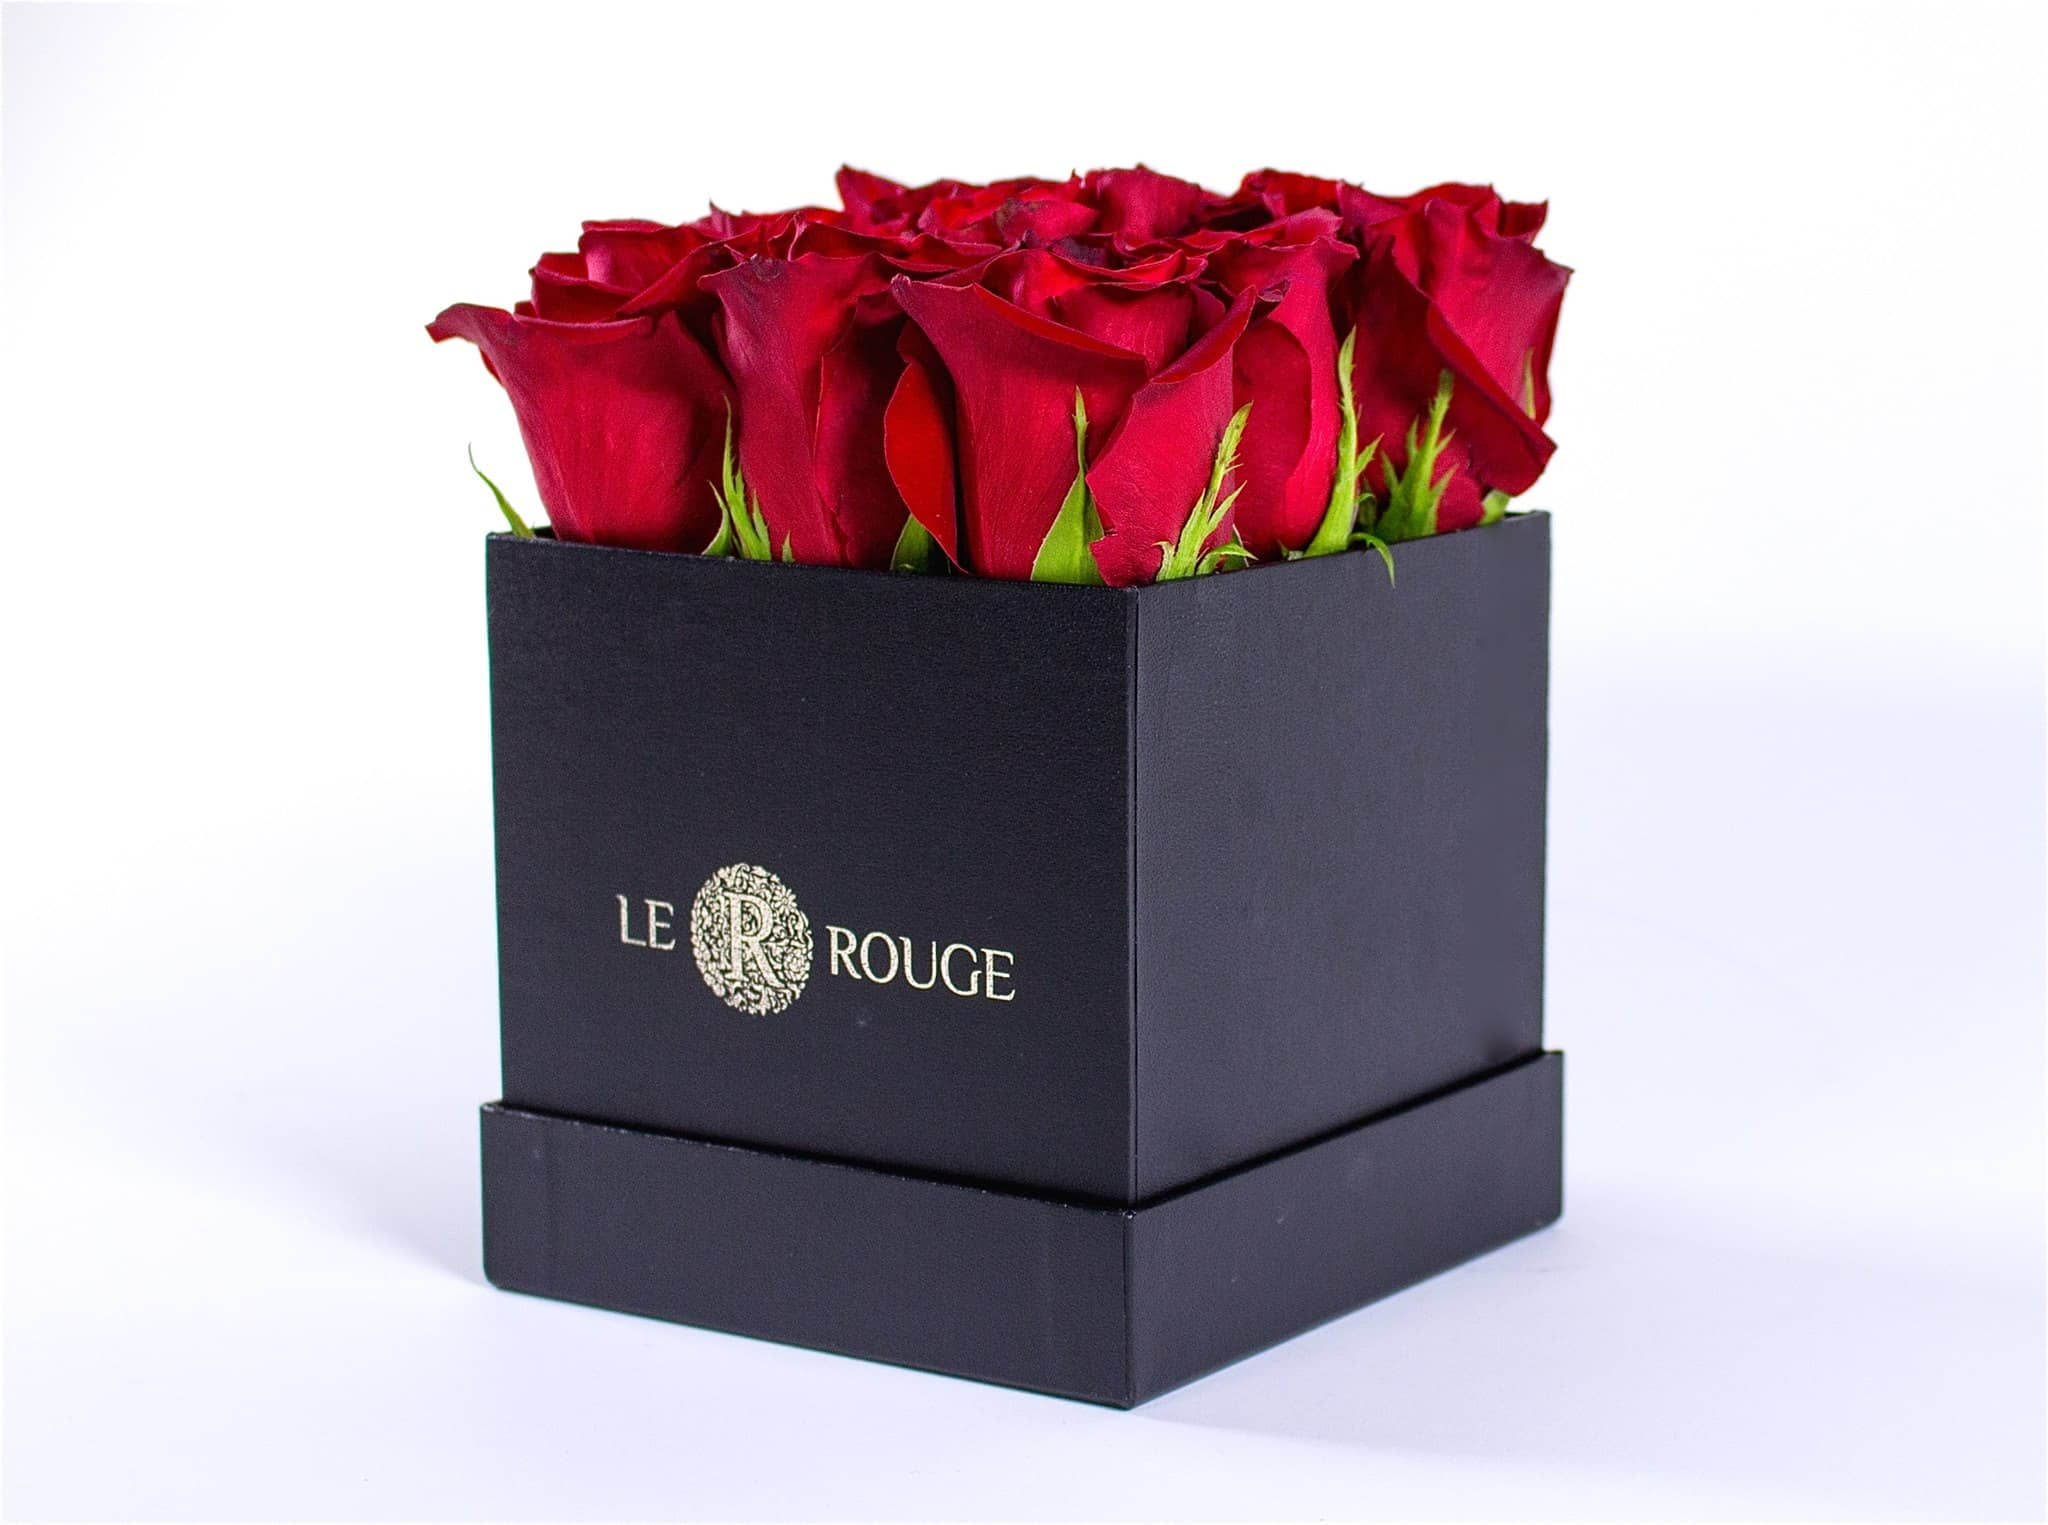 Flower shop florist st laurent delivery le rouge fleuriste cadeaux flower shop florist st laurent delivery le rouge fleuriste cadeaux izmirmasajfo